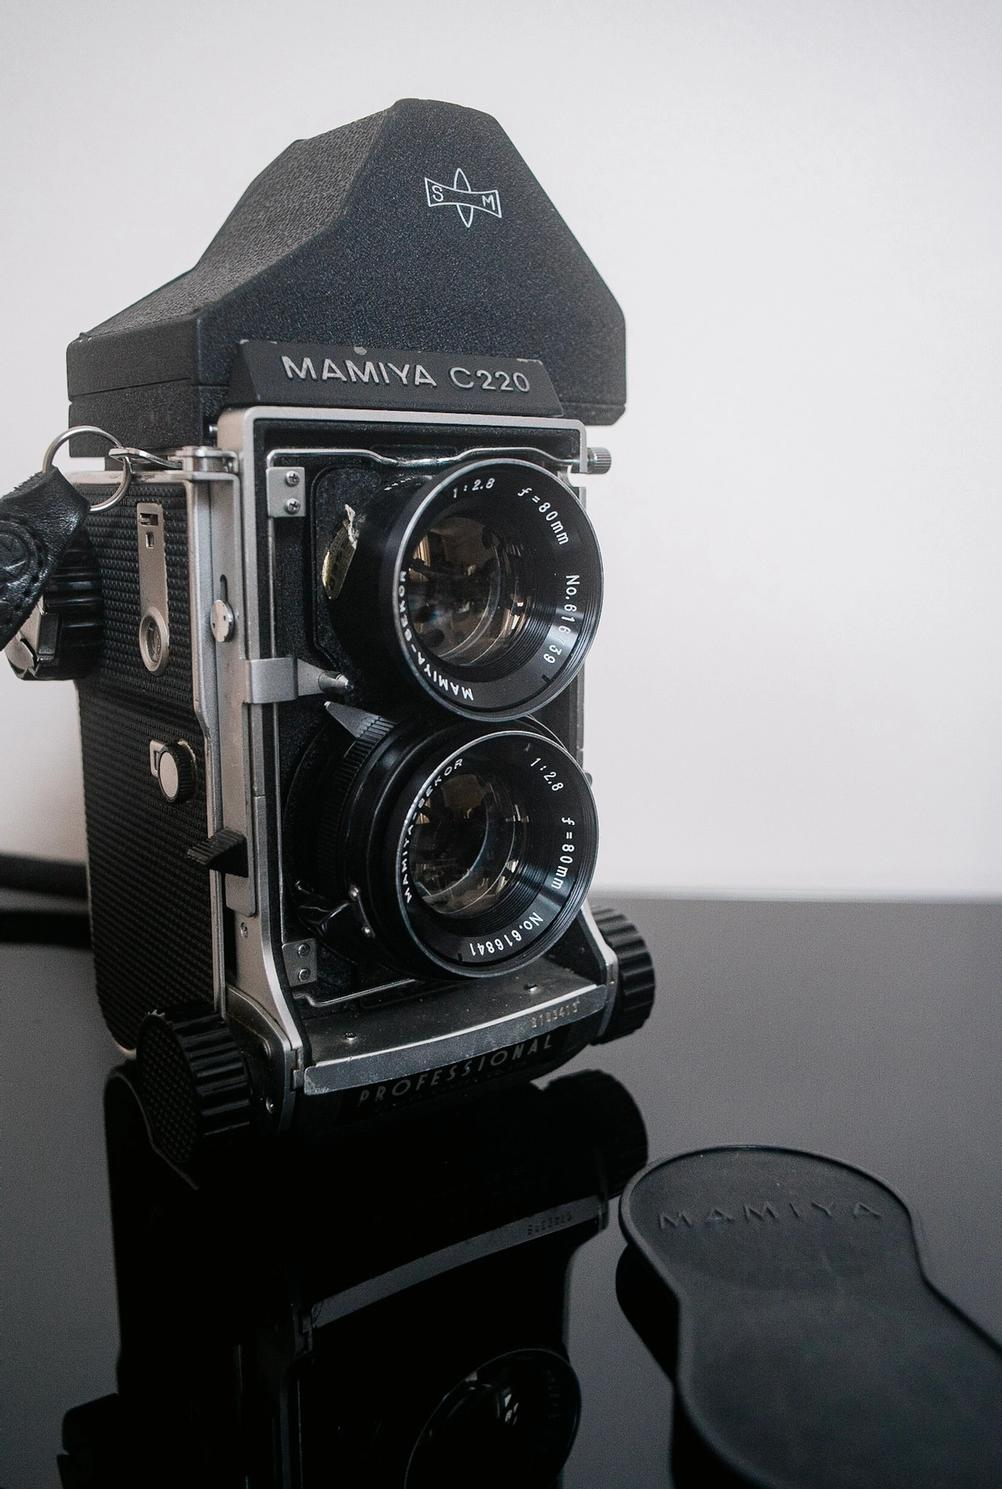 Mamiya C220, Sekor 80mm f2.8 lens and prism viewfinder.